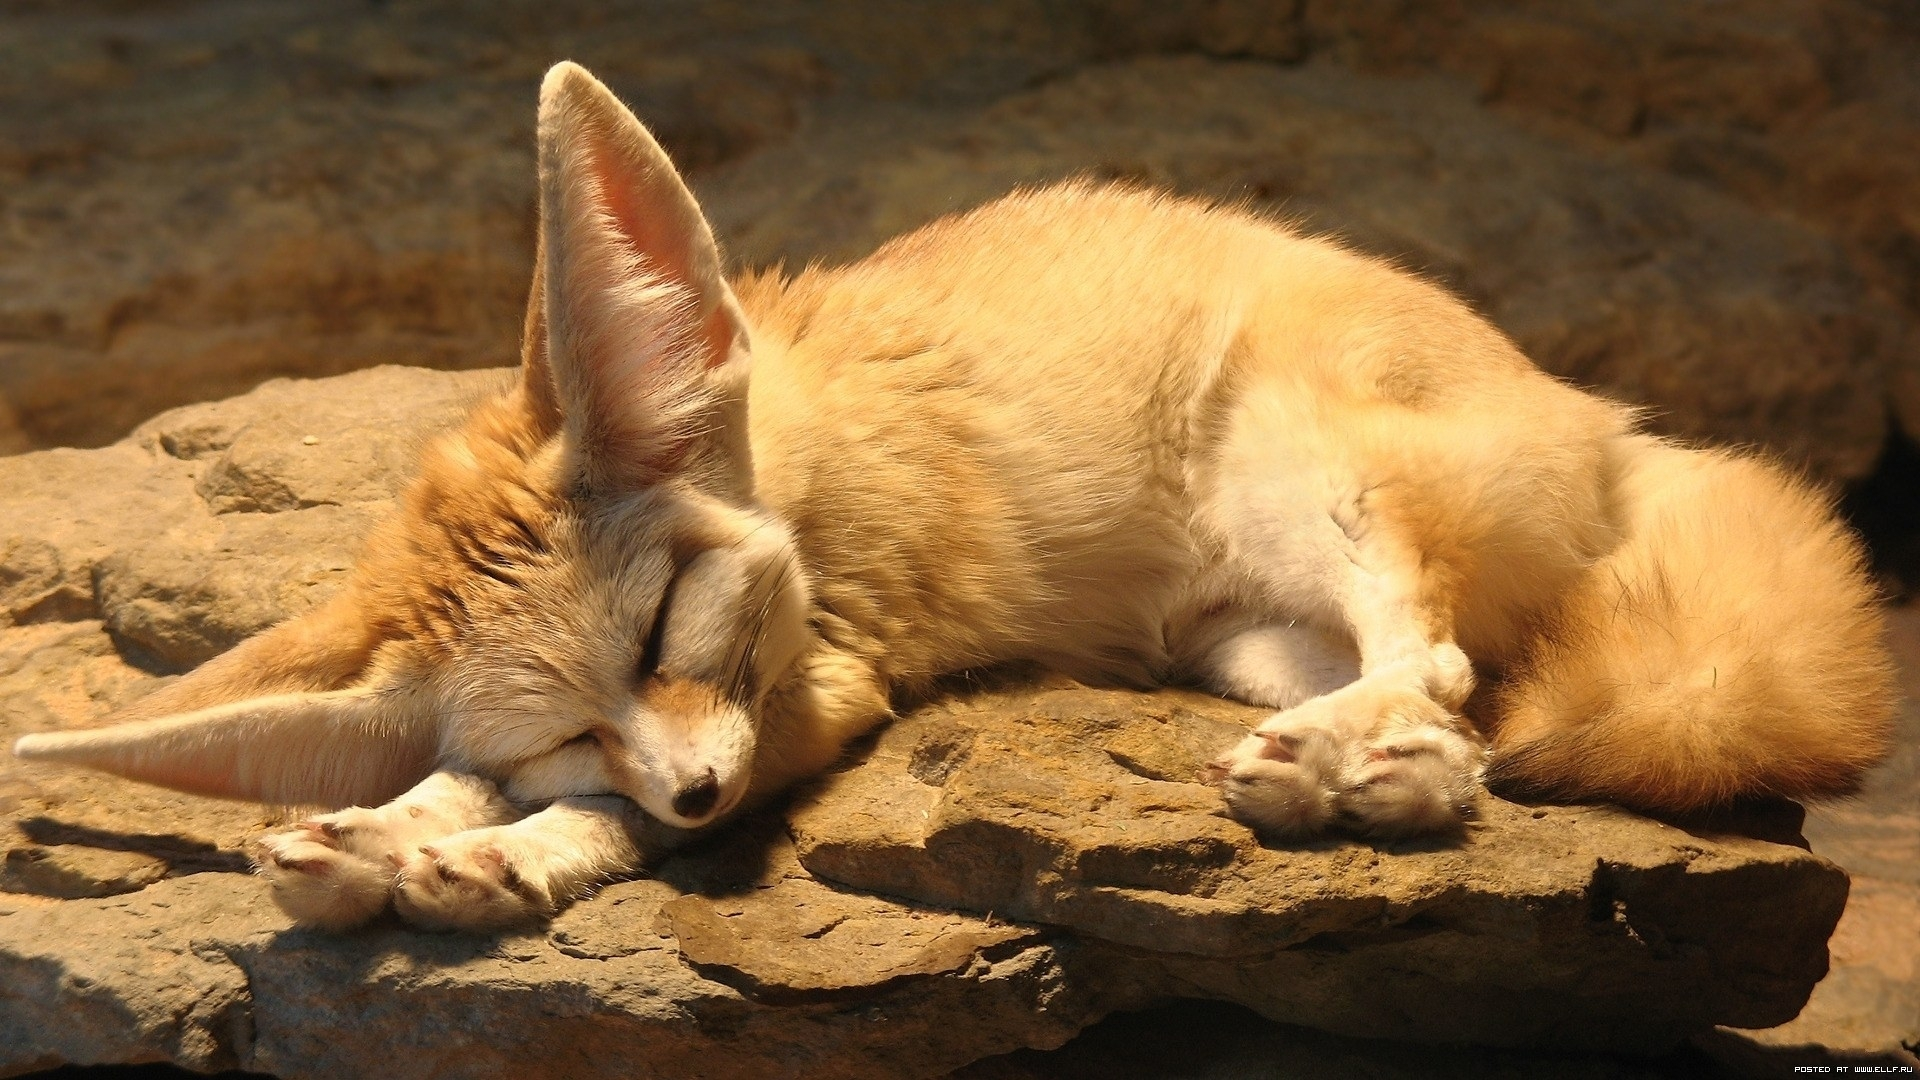 23948 download wallpaper Animals, Fox screensavers and pictures for free